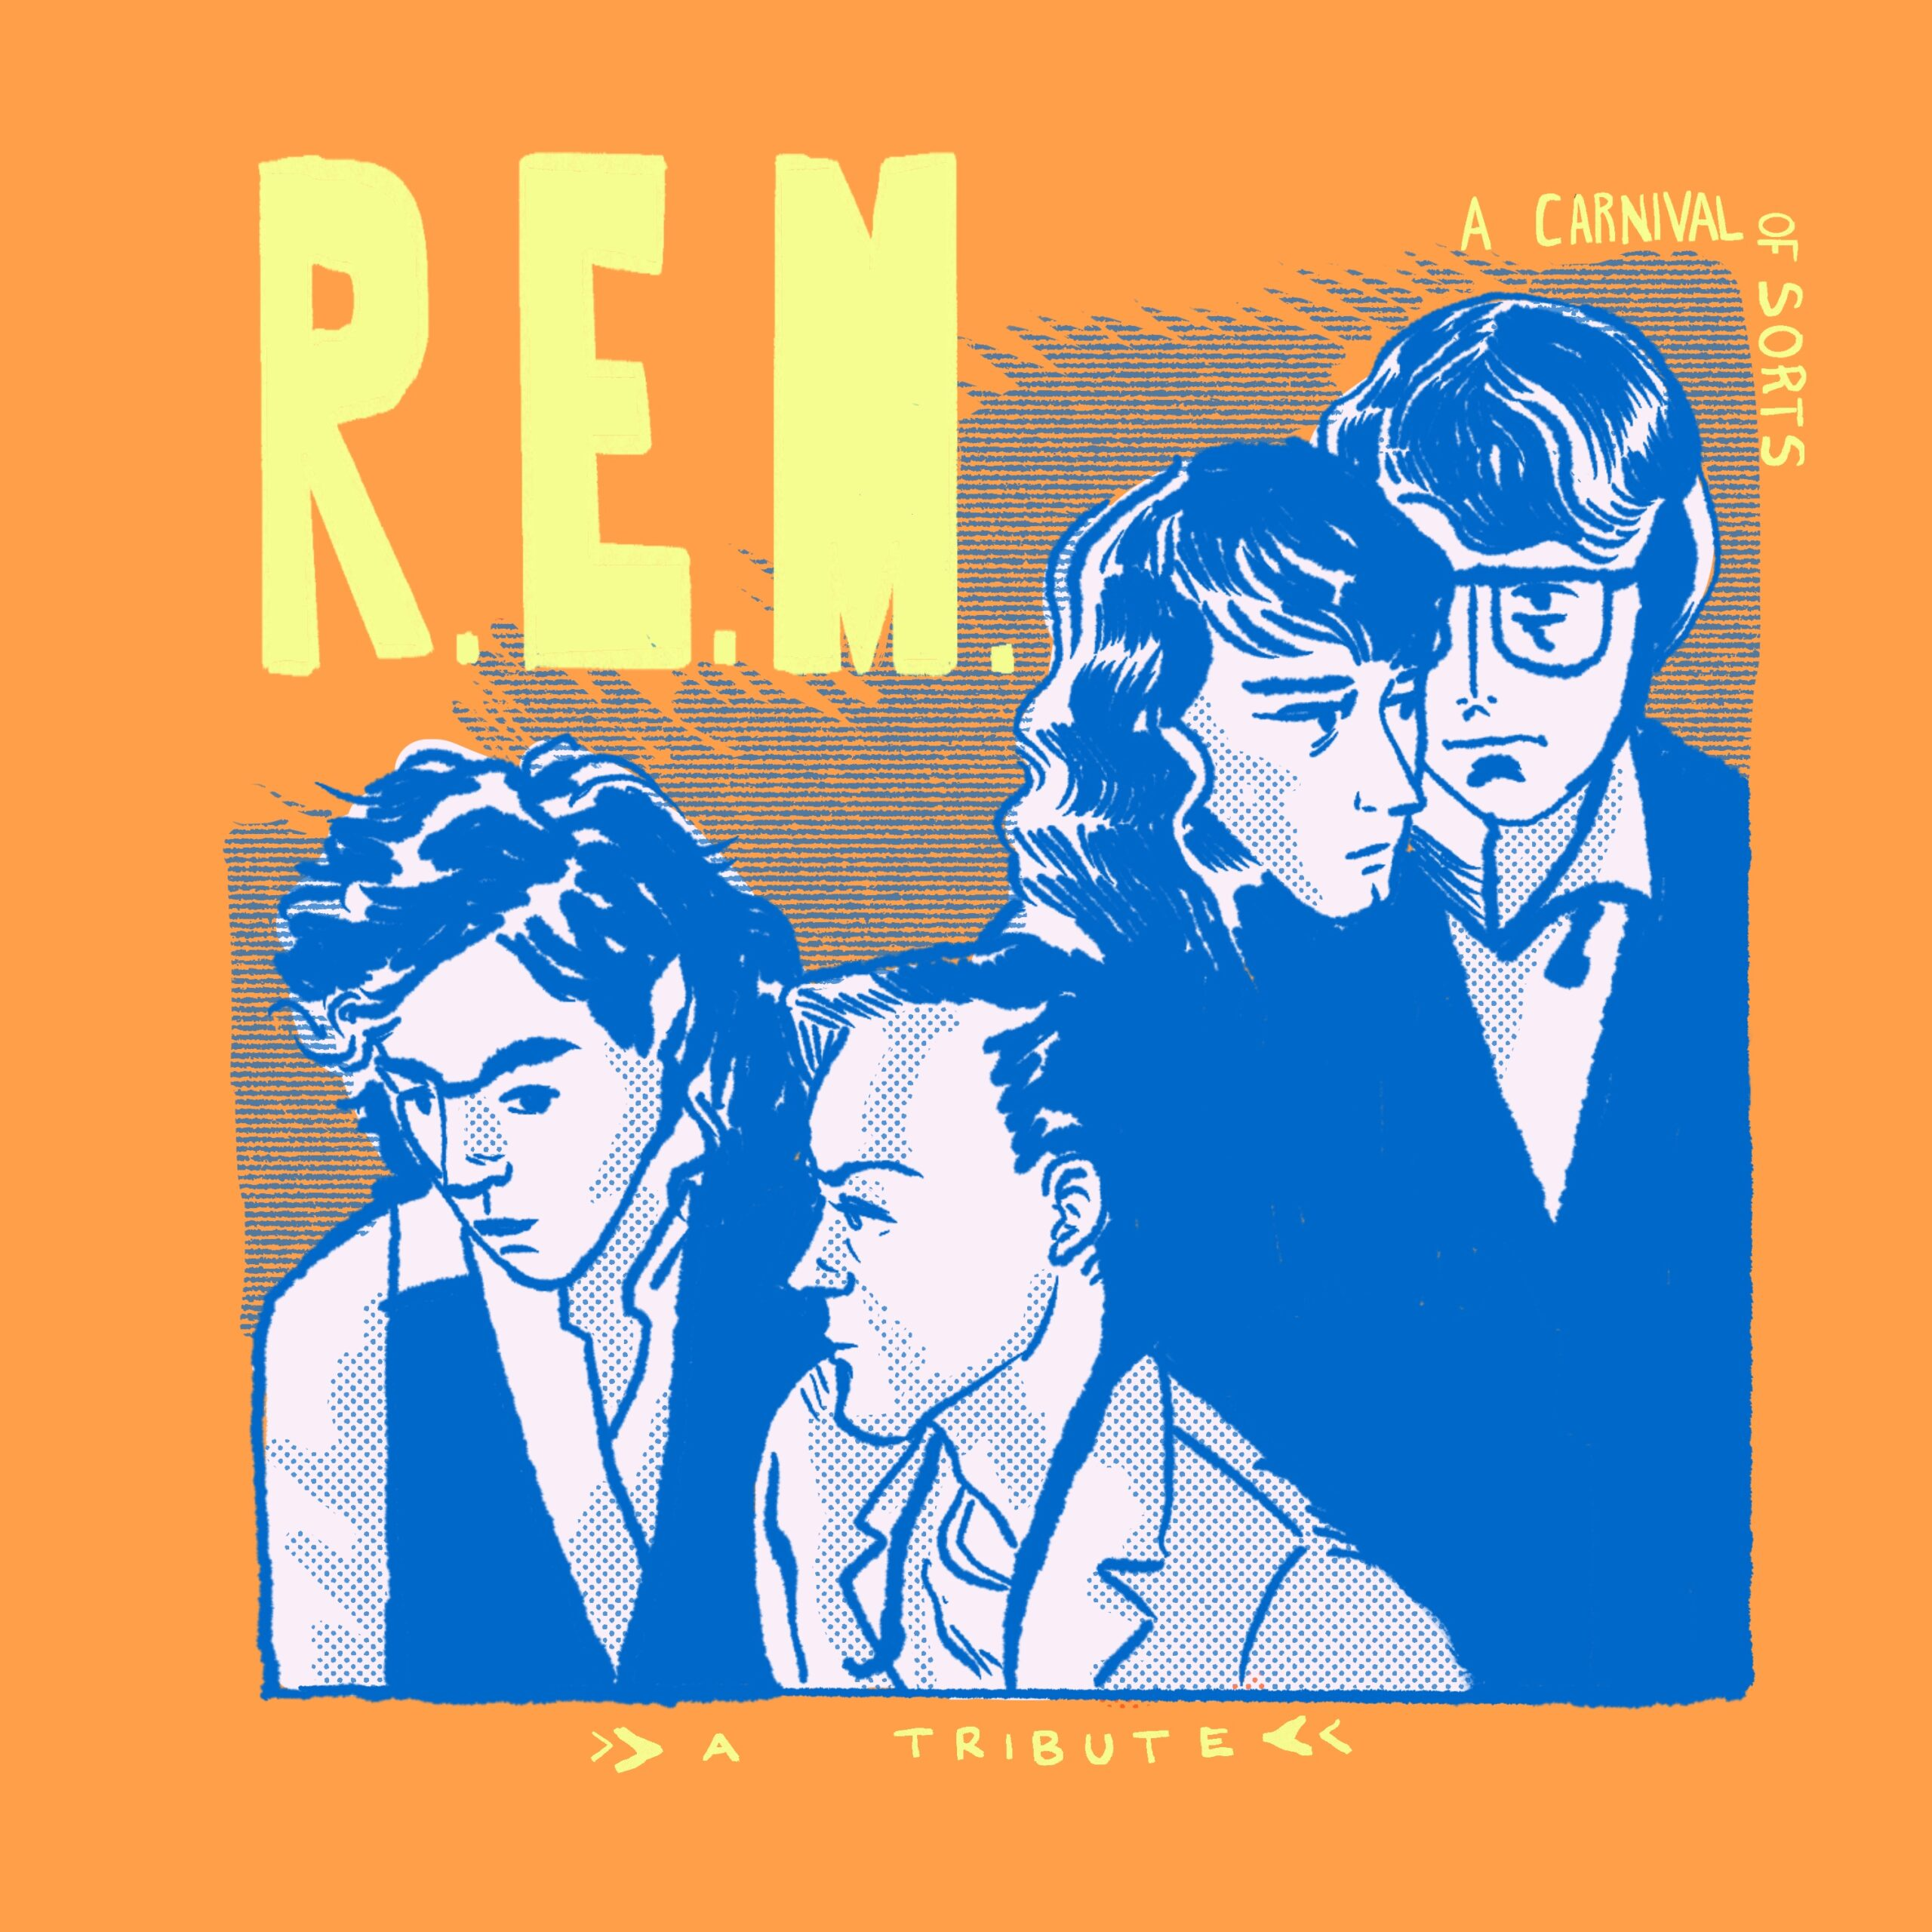 NEWS: A Carnival of Sorts: an R.E.M. covers compilation in Aid of Help Musicians